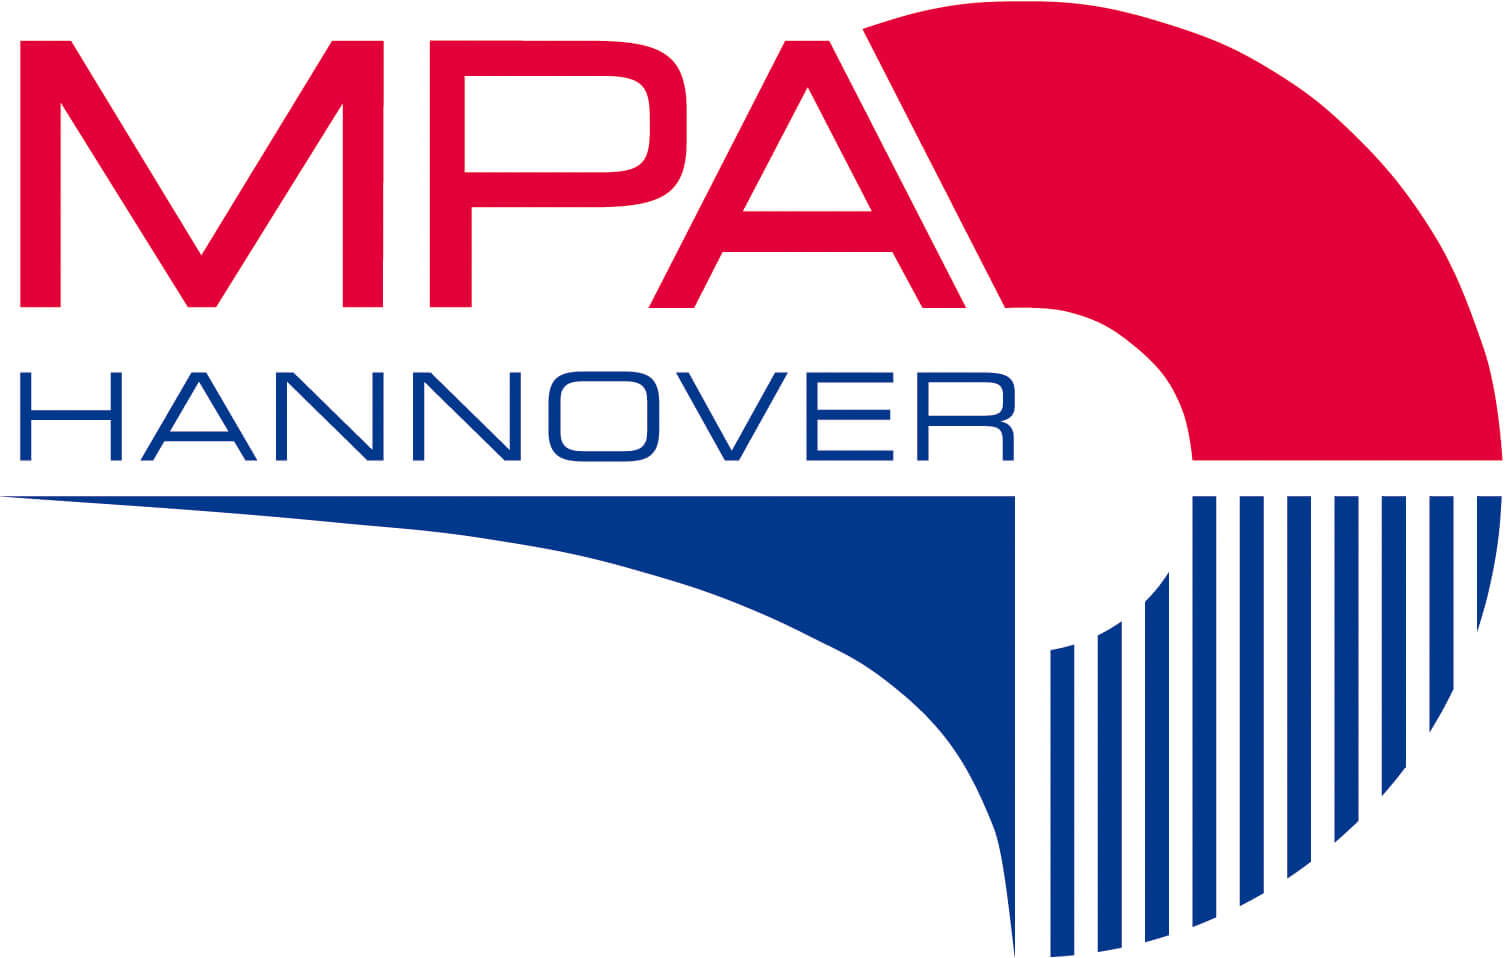 MPA HANNOVER - NOVOABRASIVE cut-off wheels certified in Germany